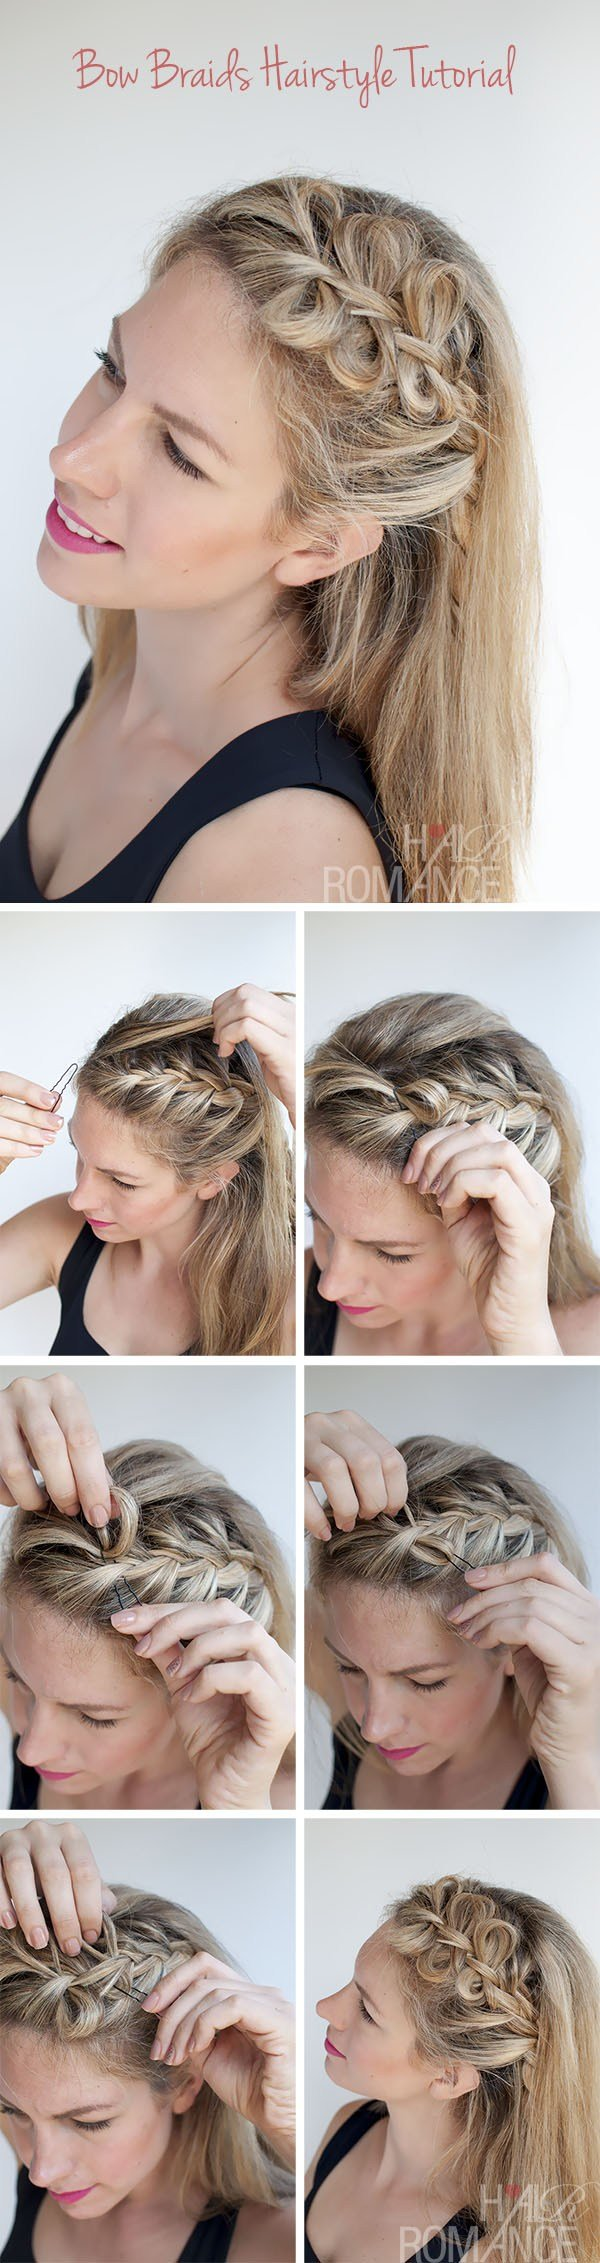 The Best Bow Braids Hairstyle Tutorial Hair Romance Pictures